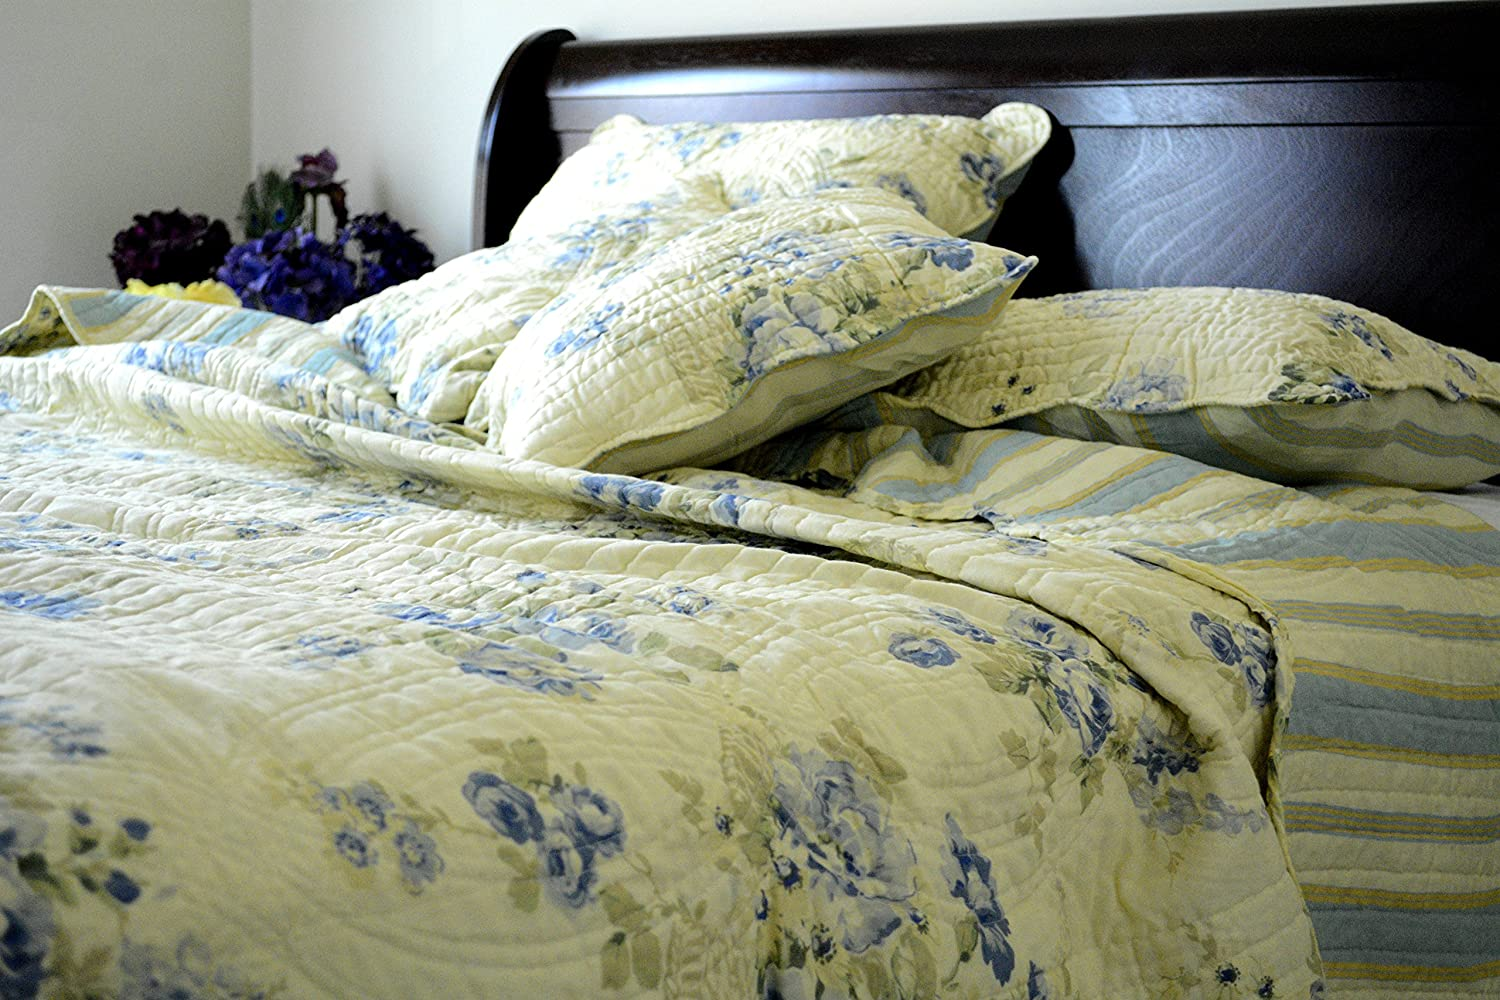 Floral Camellia Quilt Bedspread Set, Light Yellow & Blue, Queen, 5-Pieces